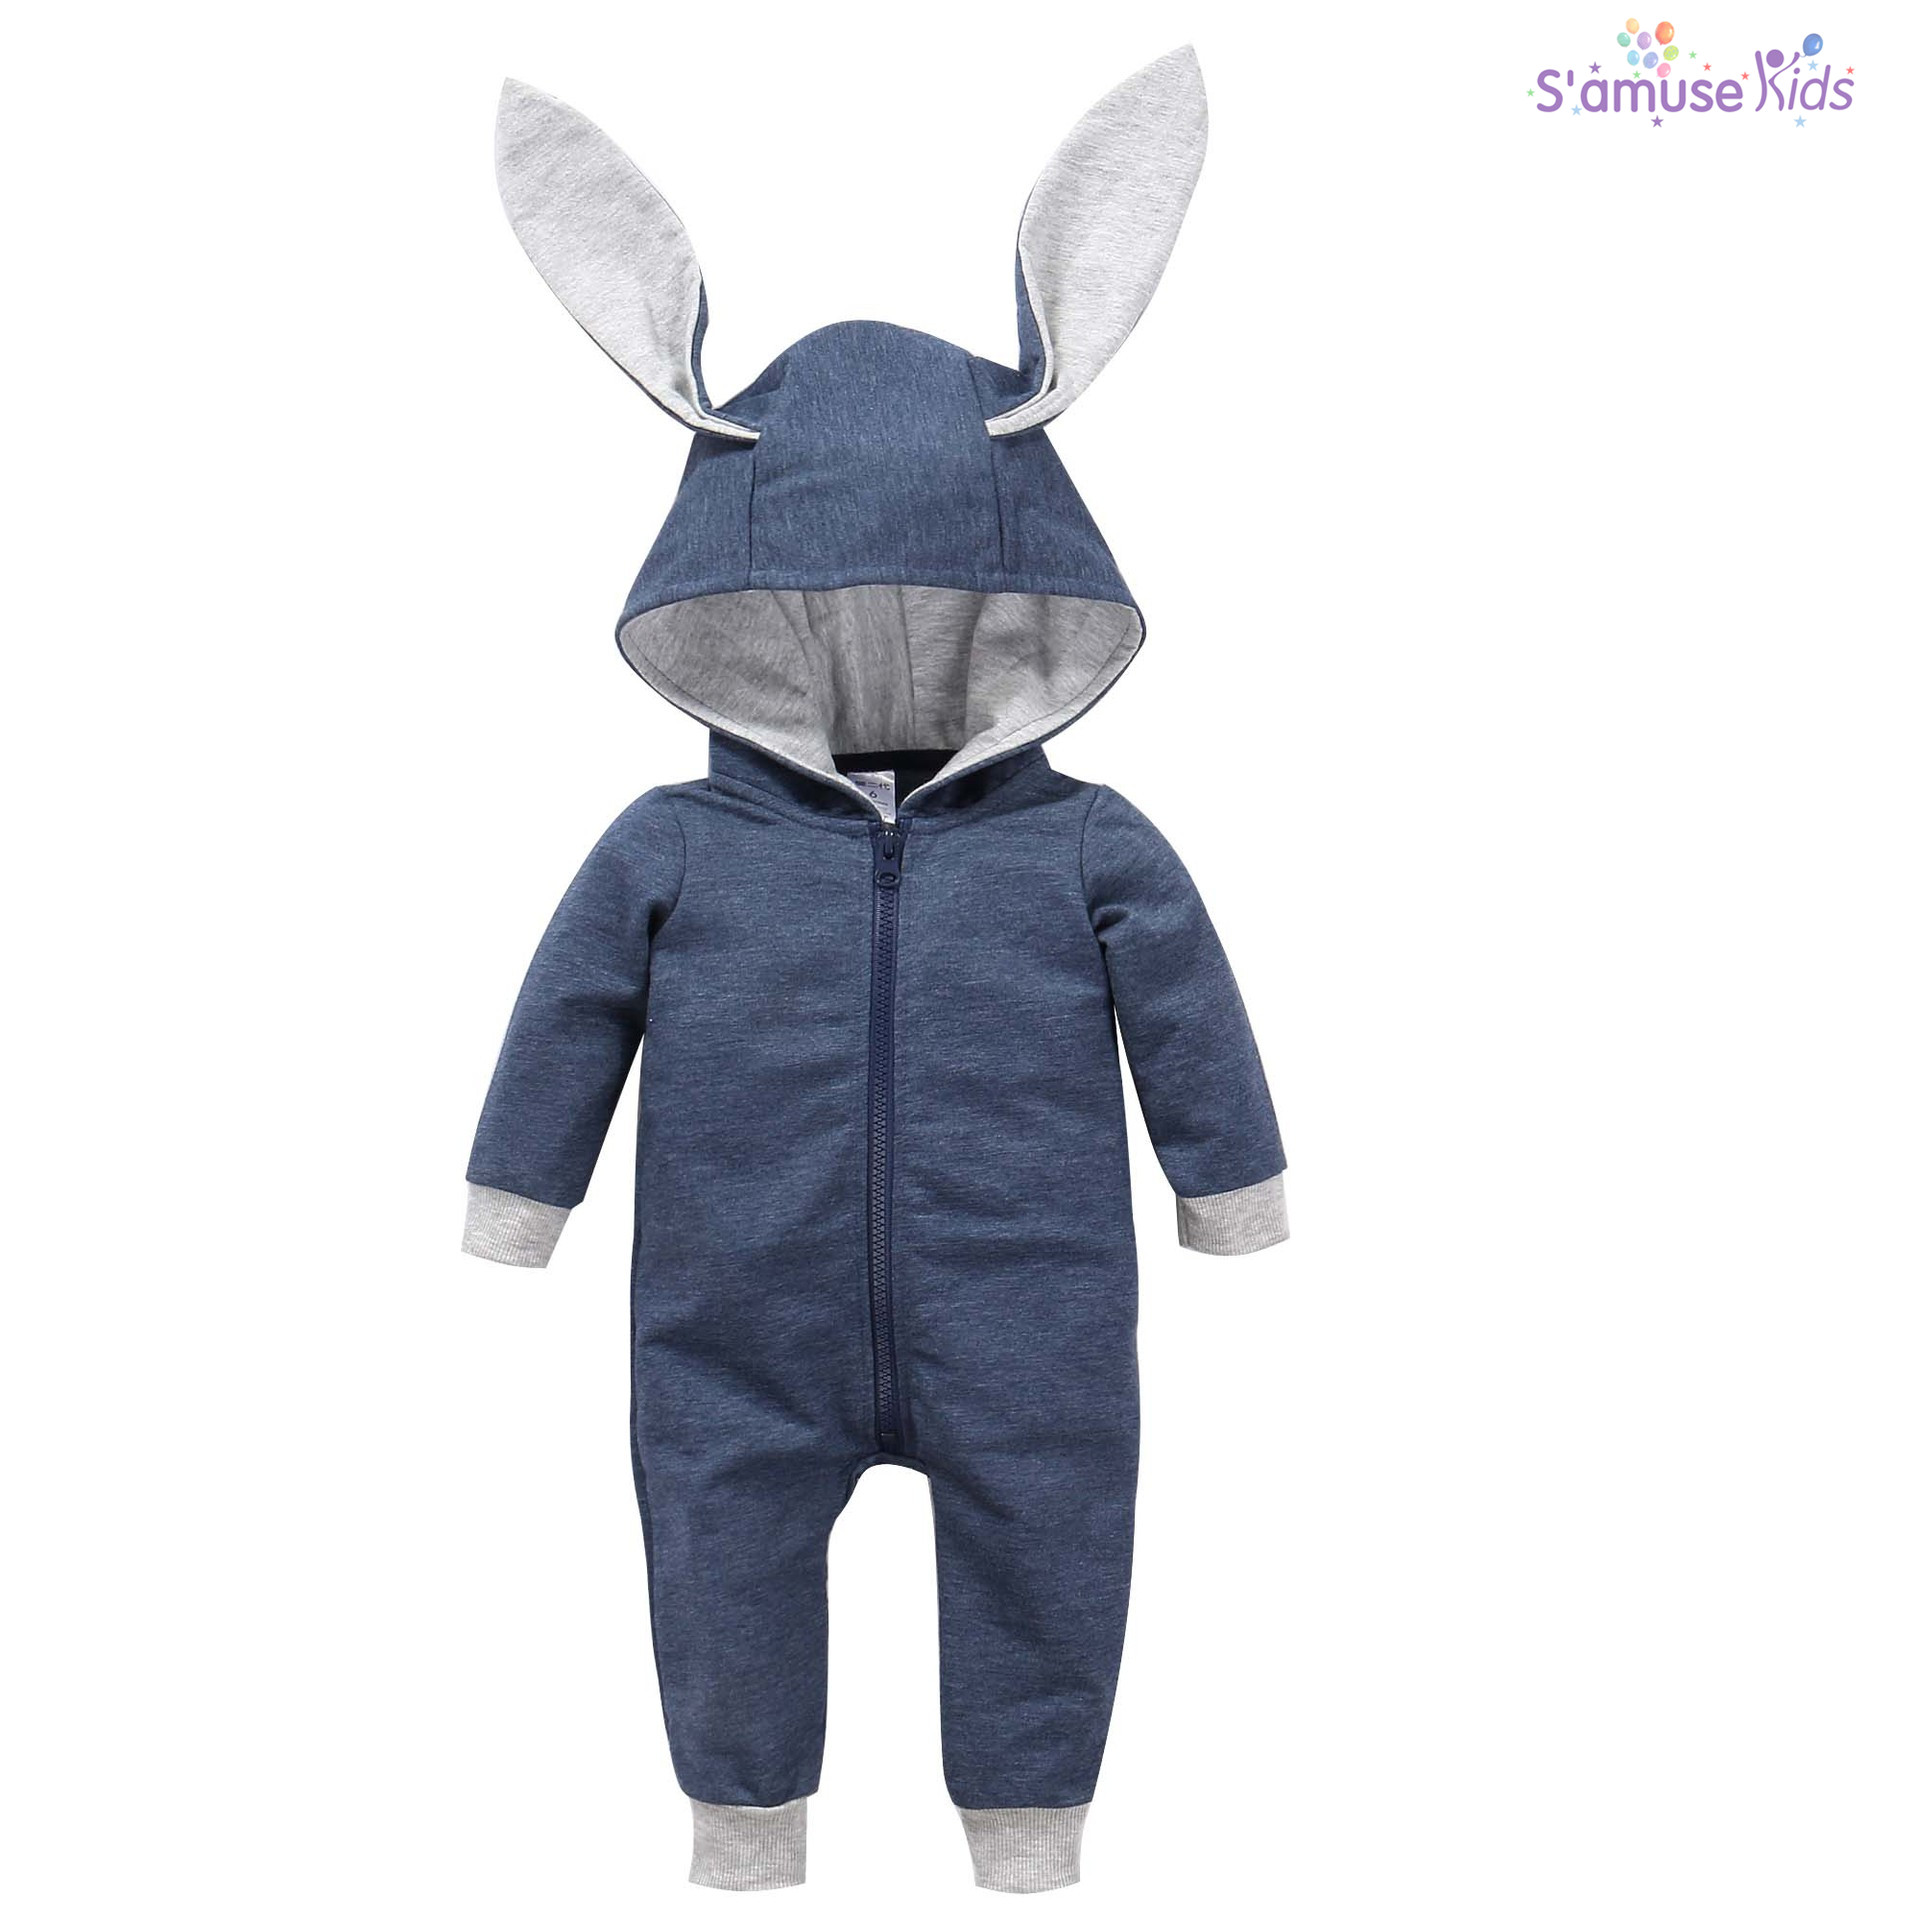 Newborn Baby Girls Boys Clothes Baby Rompers Long Sleeve Jumpsuit Bunny Ear Baby Clothes Autumn Infantil Hoodes Romper newborn infant baby girls boys long sleeve clothing 3d ear romper cotton jumpsuit playsuit bunny outfits one piecer clothes kid